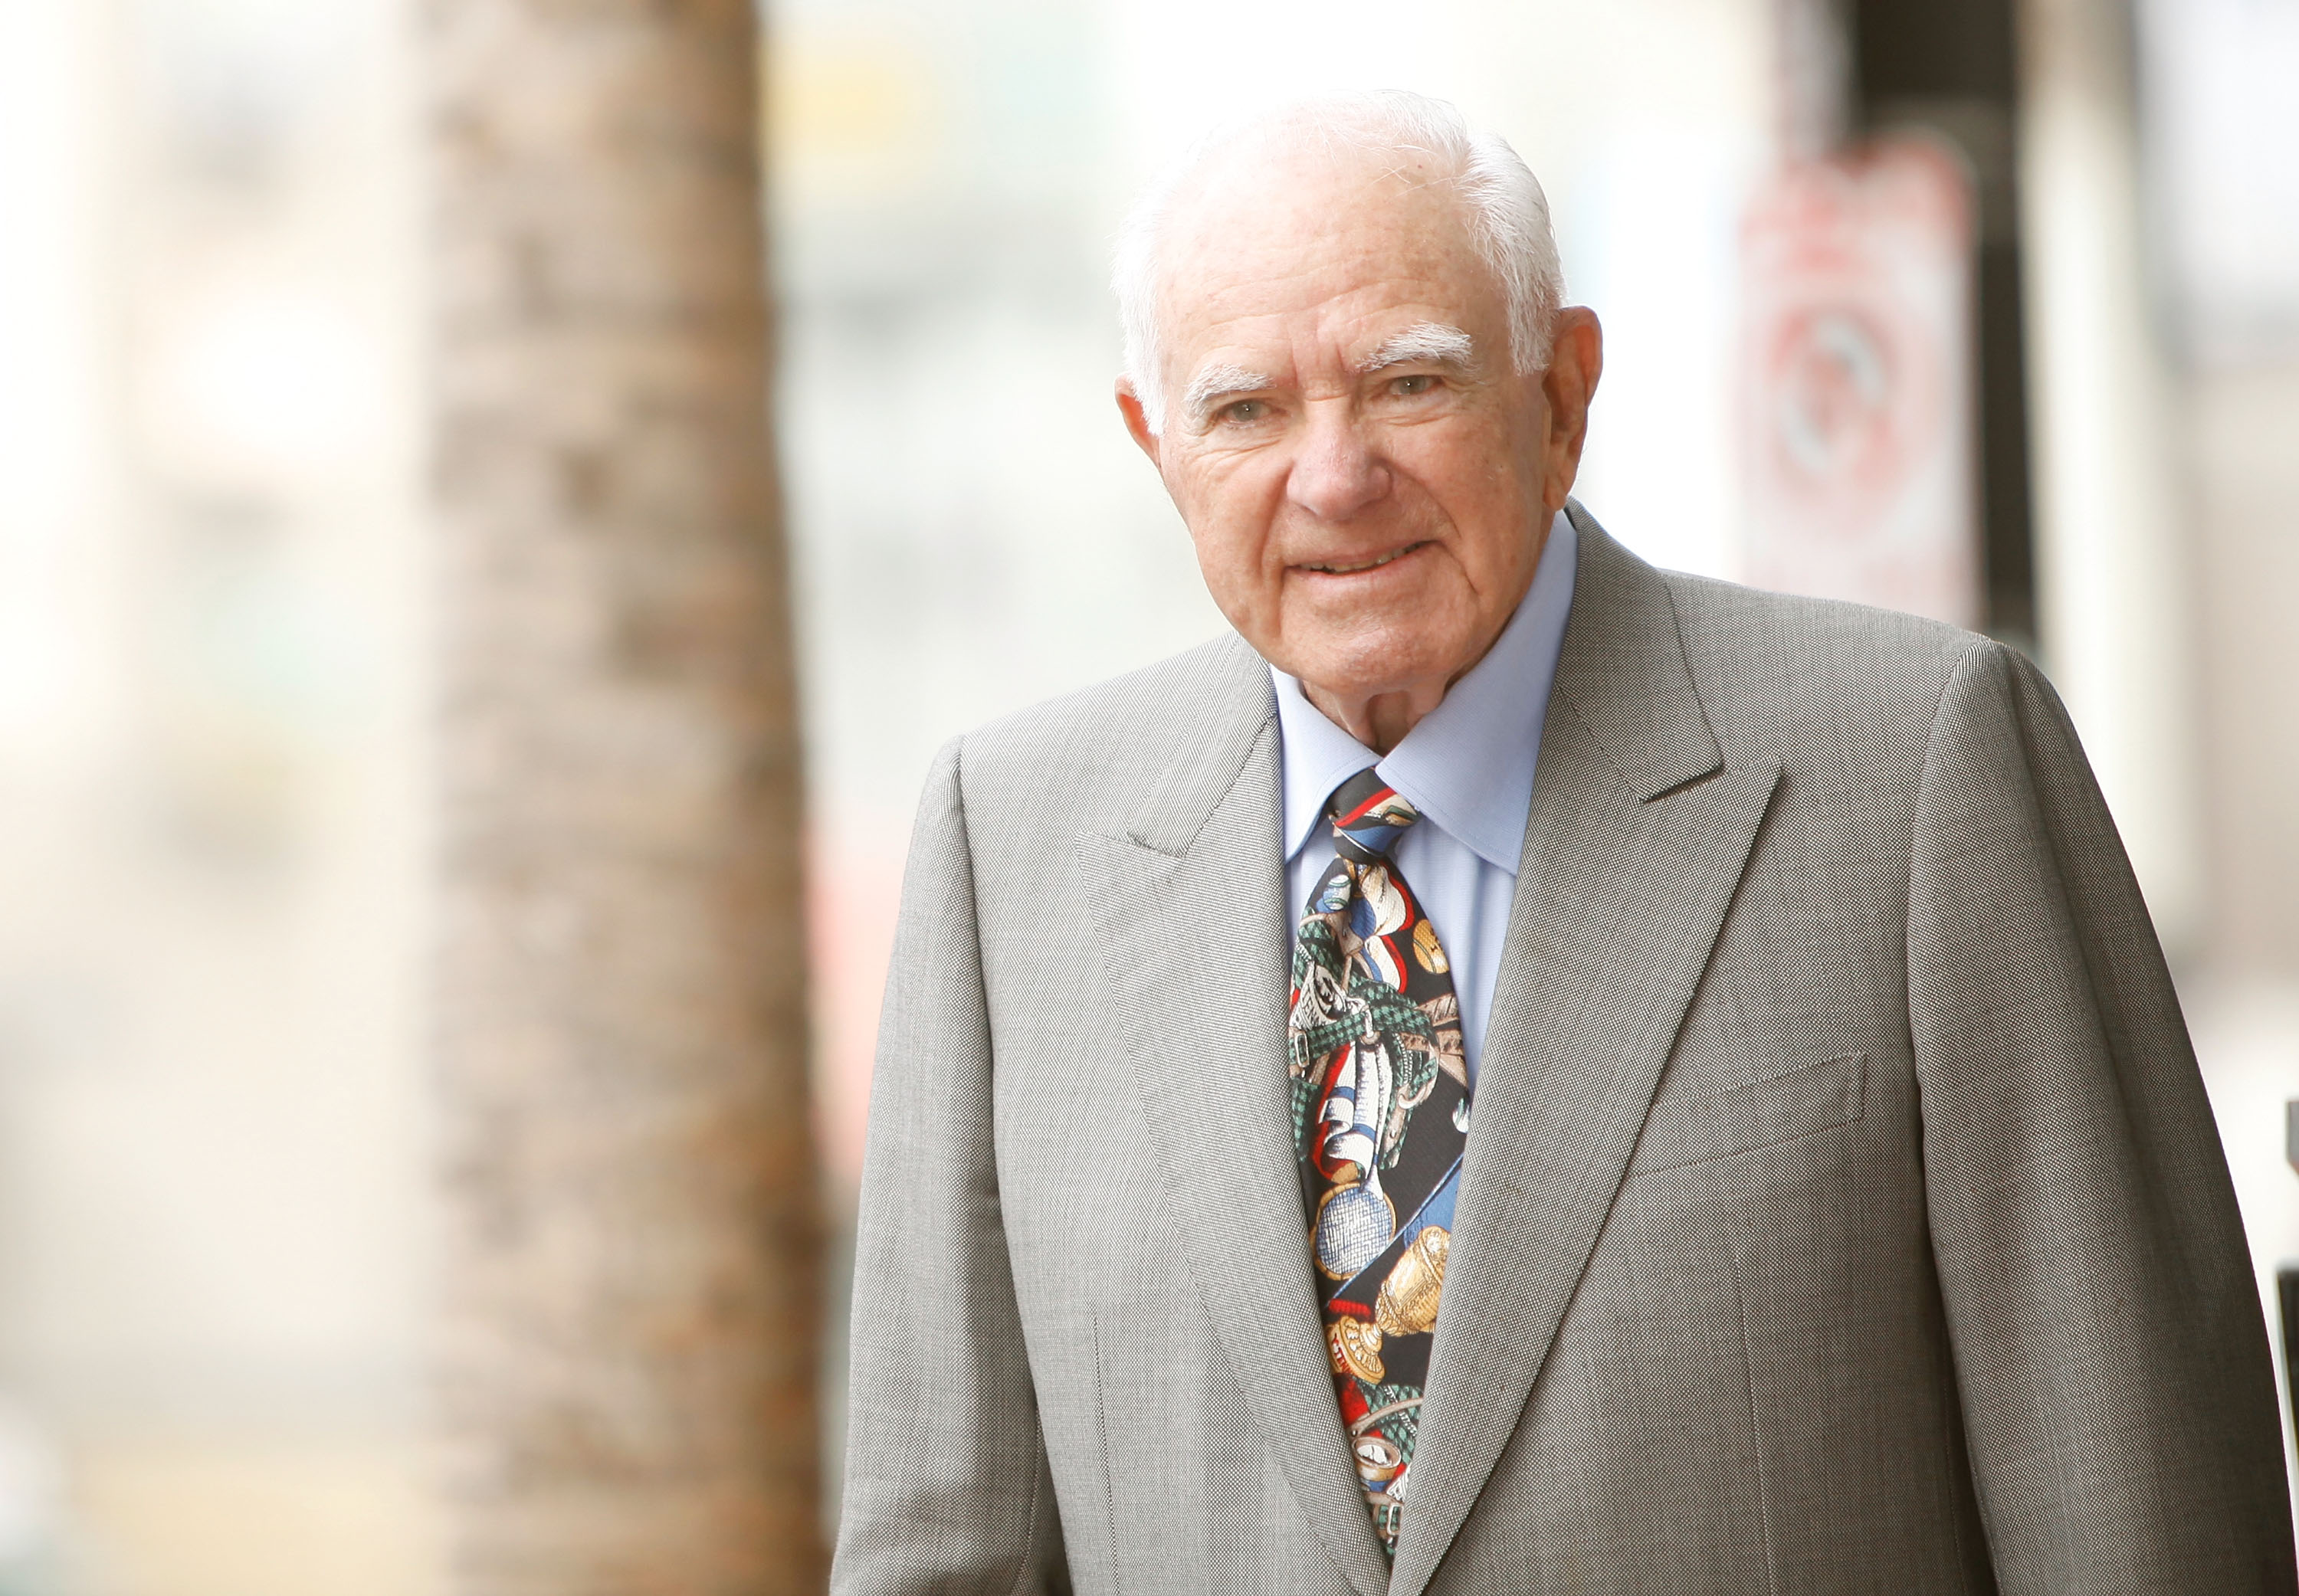 Judge Joseph A. Wapner Celebrates 90th Birthday With Star On Hollywood Walk